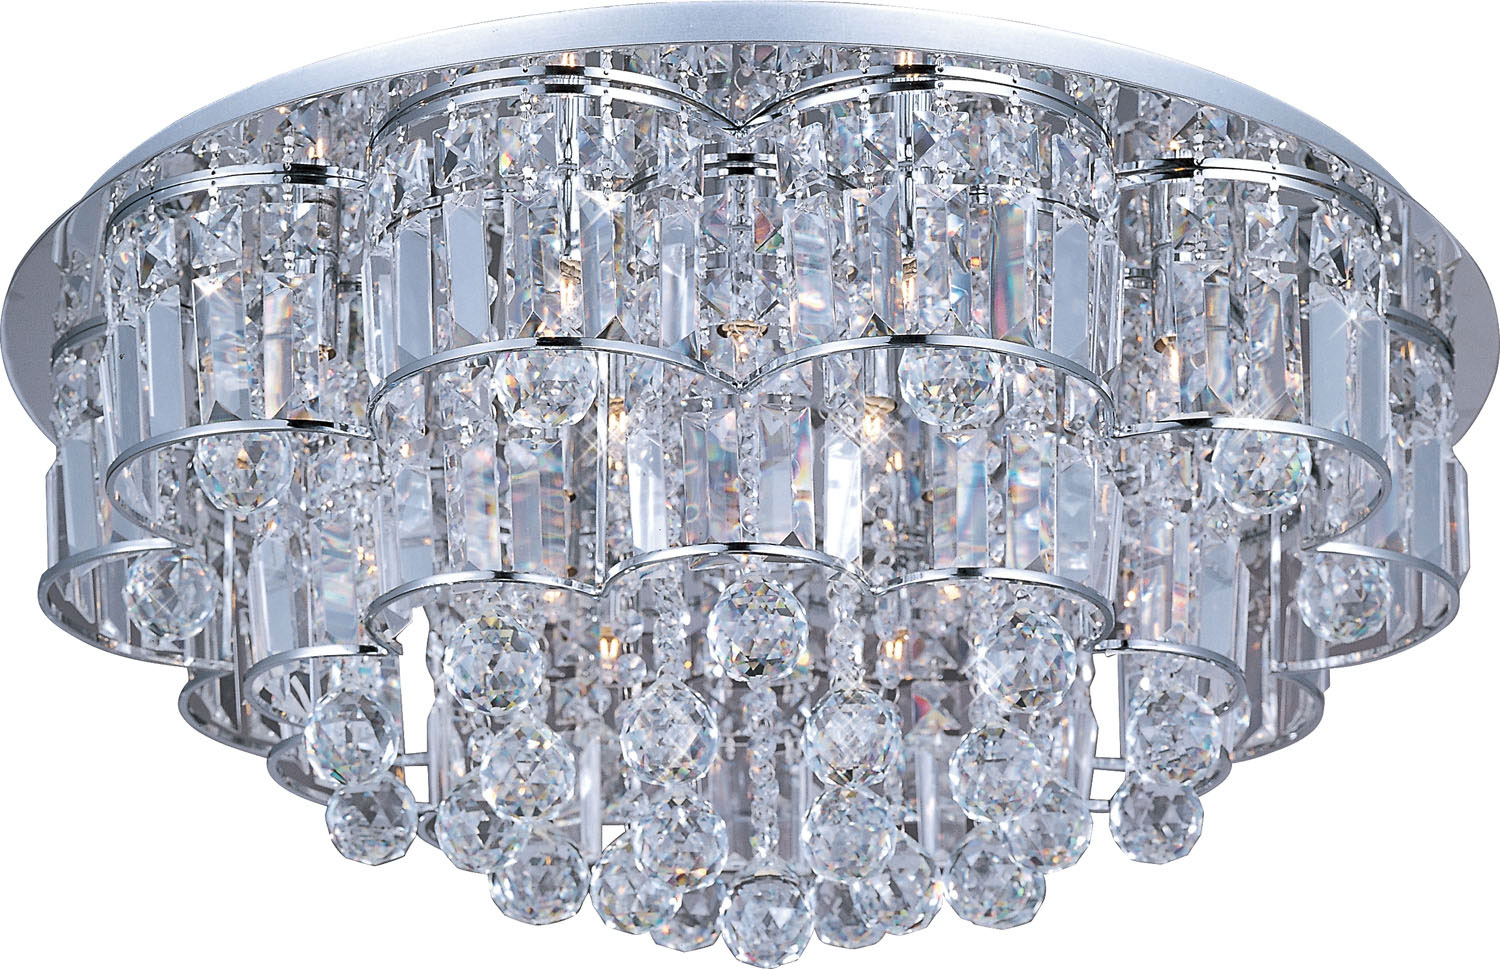 20 Light Flush Mount from the Bangle collection by ET2 E23258 20PC